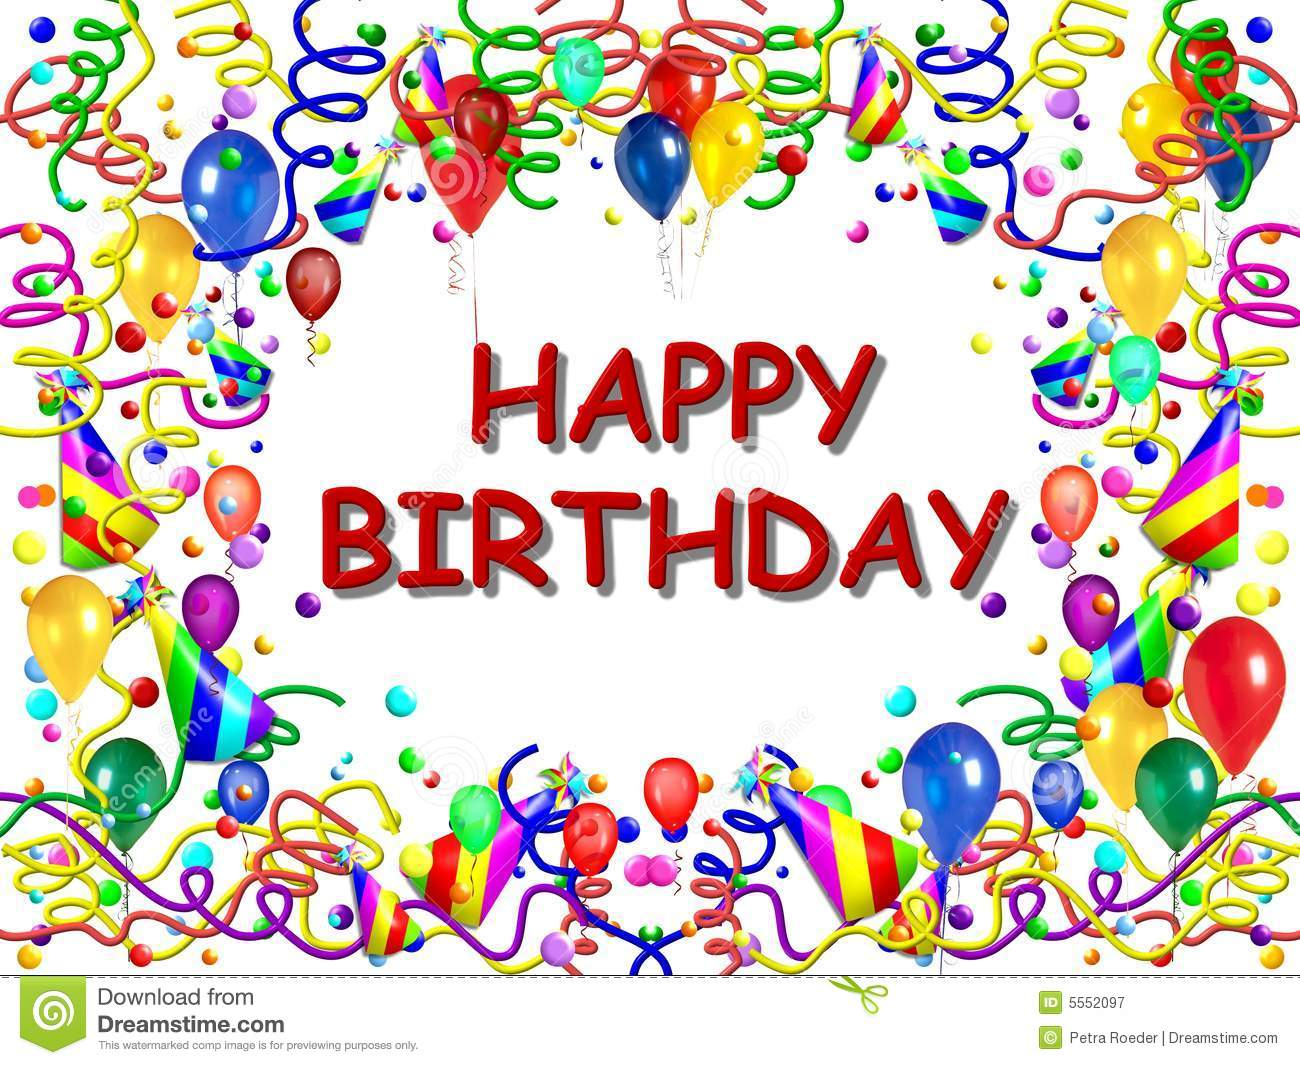 happy birthday posters free ; happy-birthday-poster-5552097